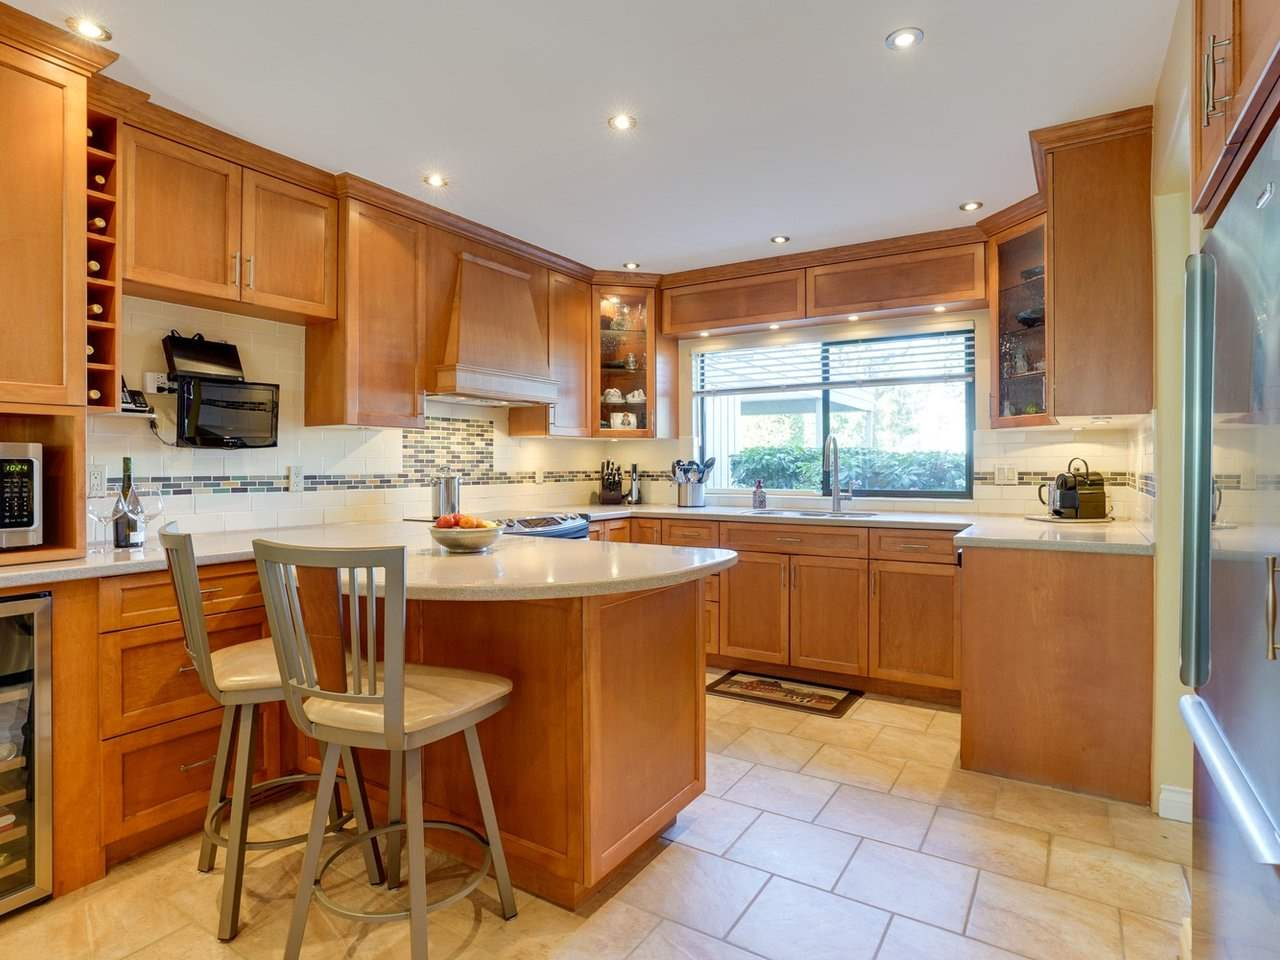 19 3031 WILLIAMS ROAD - Seafair Townhouse for sale, 3 Bedrooms (R2569630)